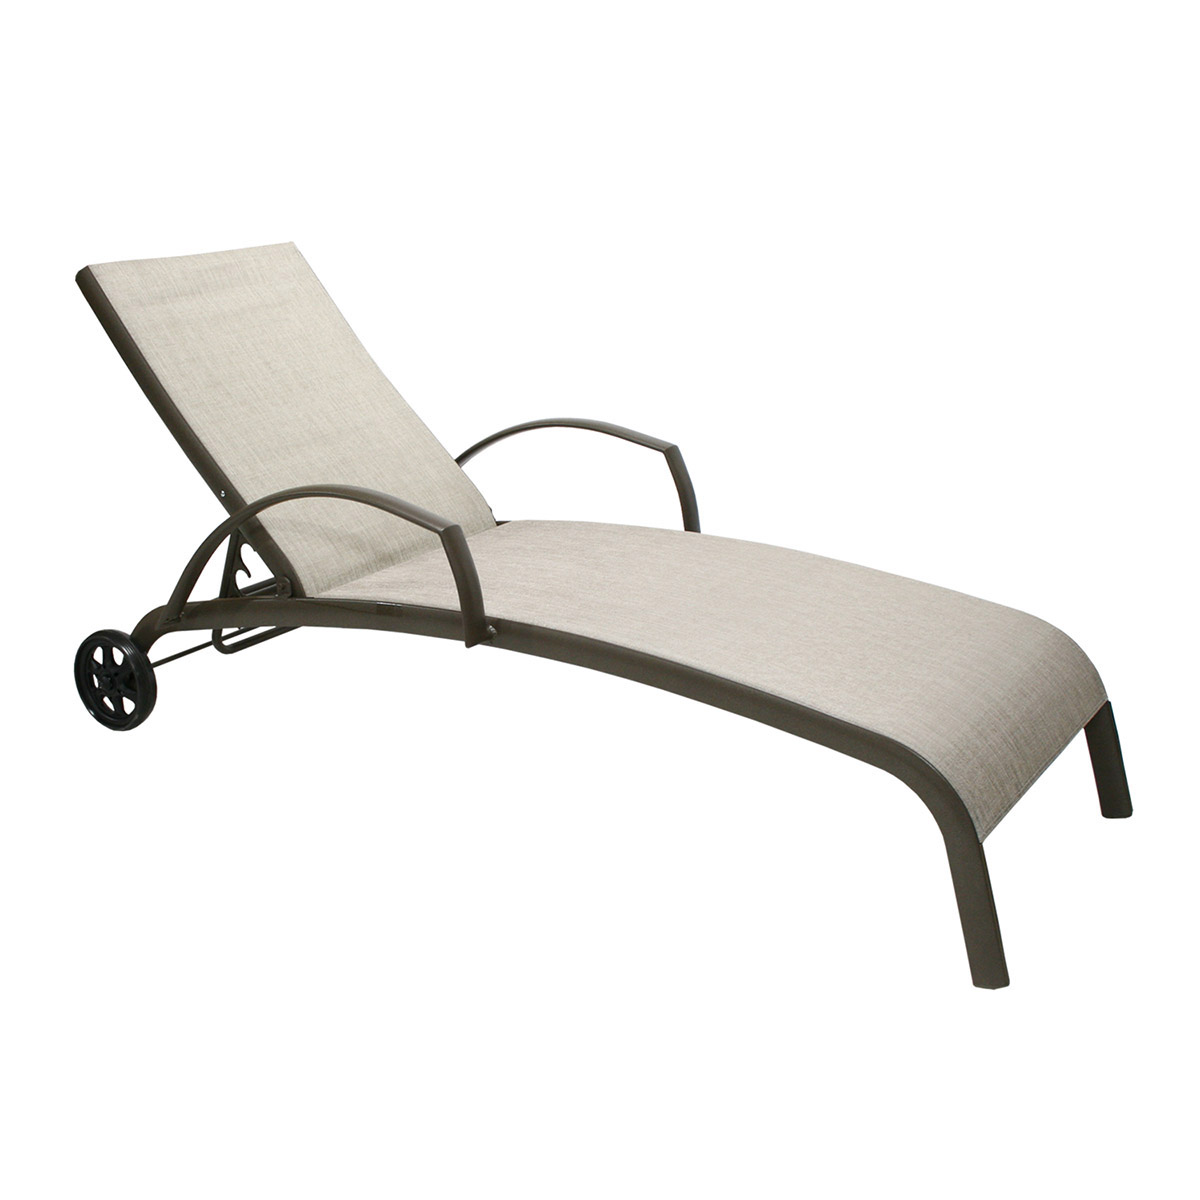 Chase longue montreal 2 fabric - Chaise longue montreal ...